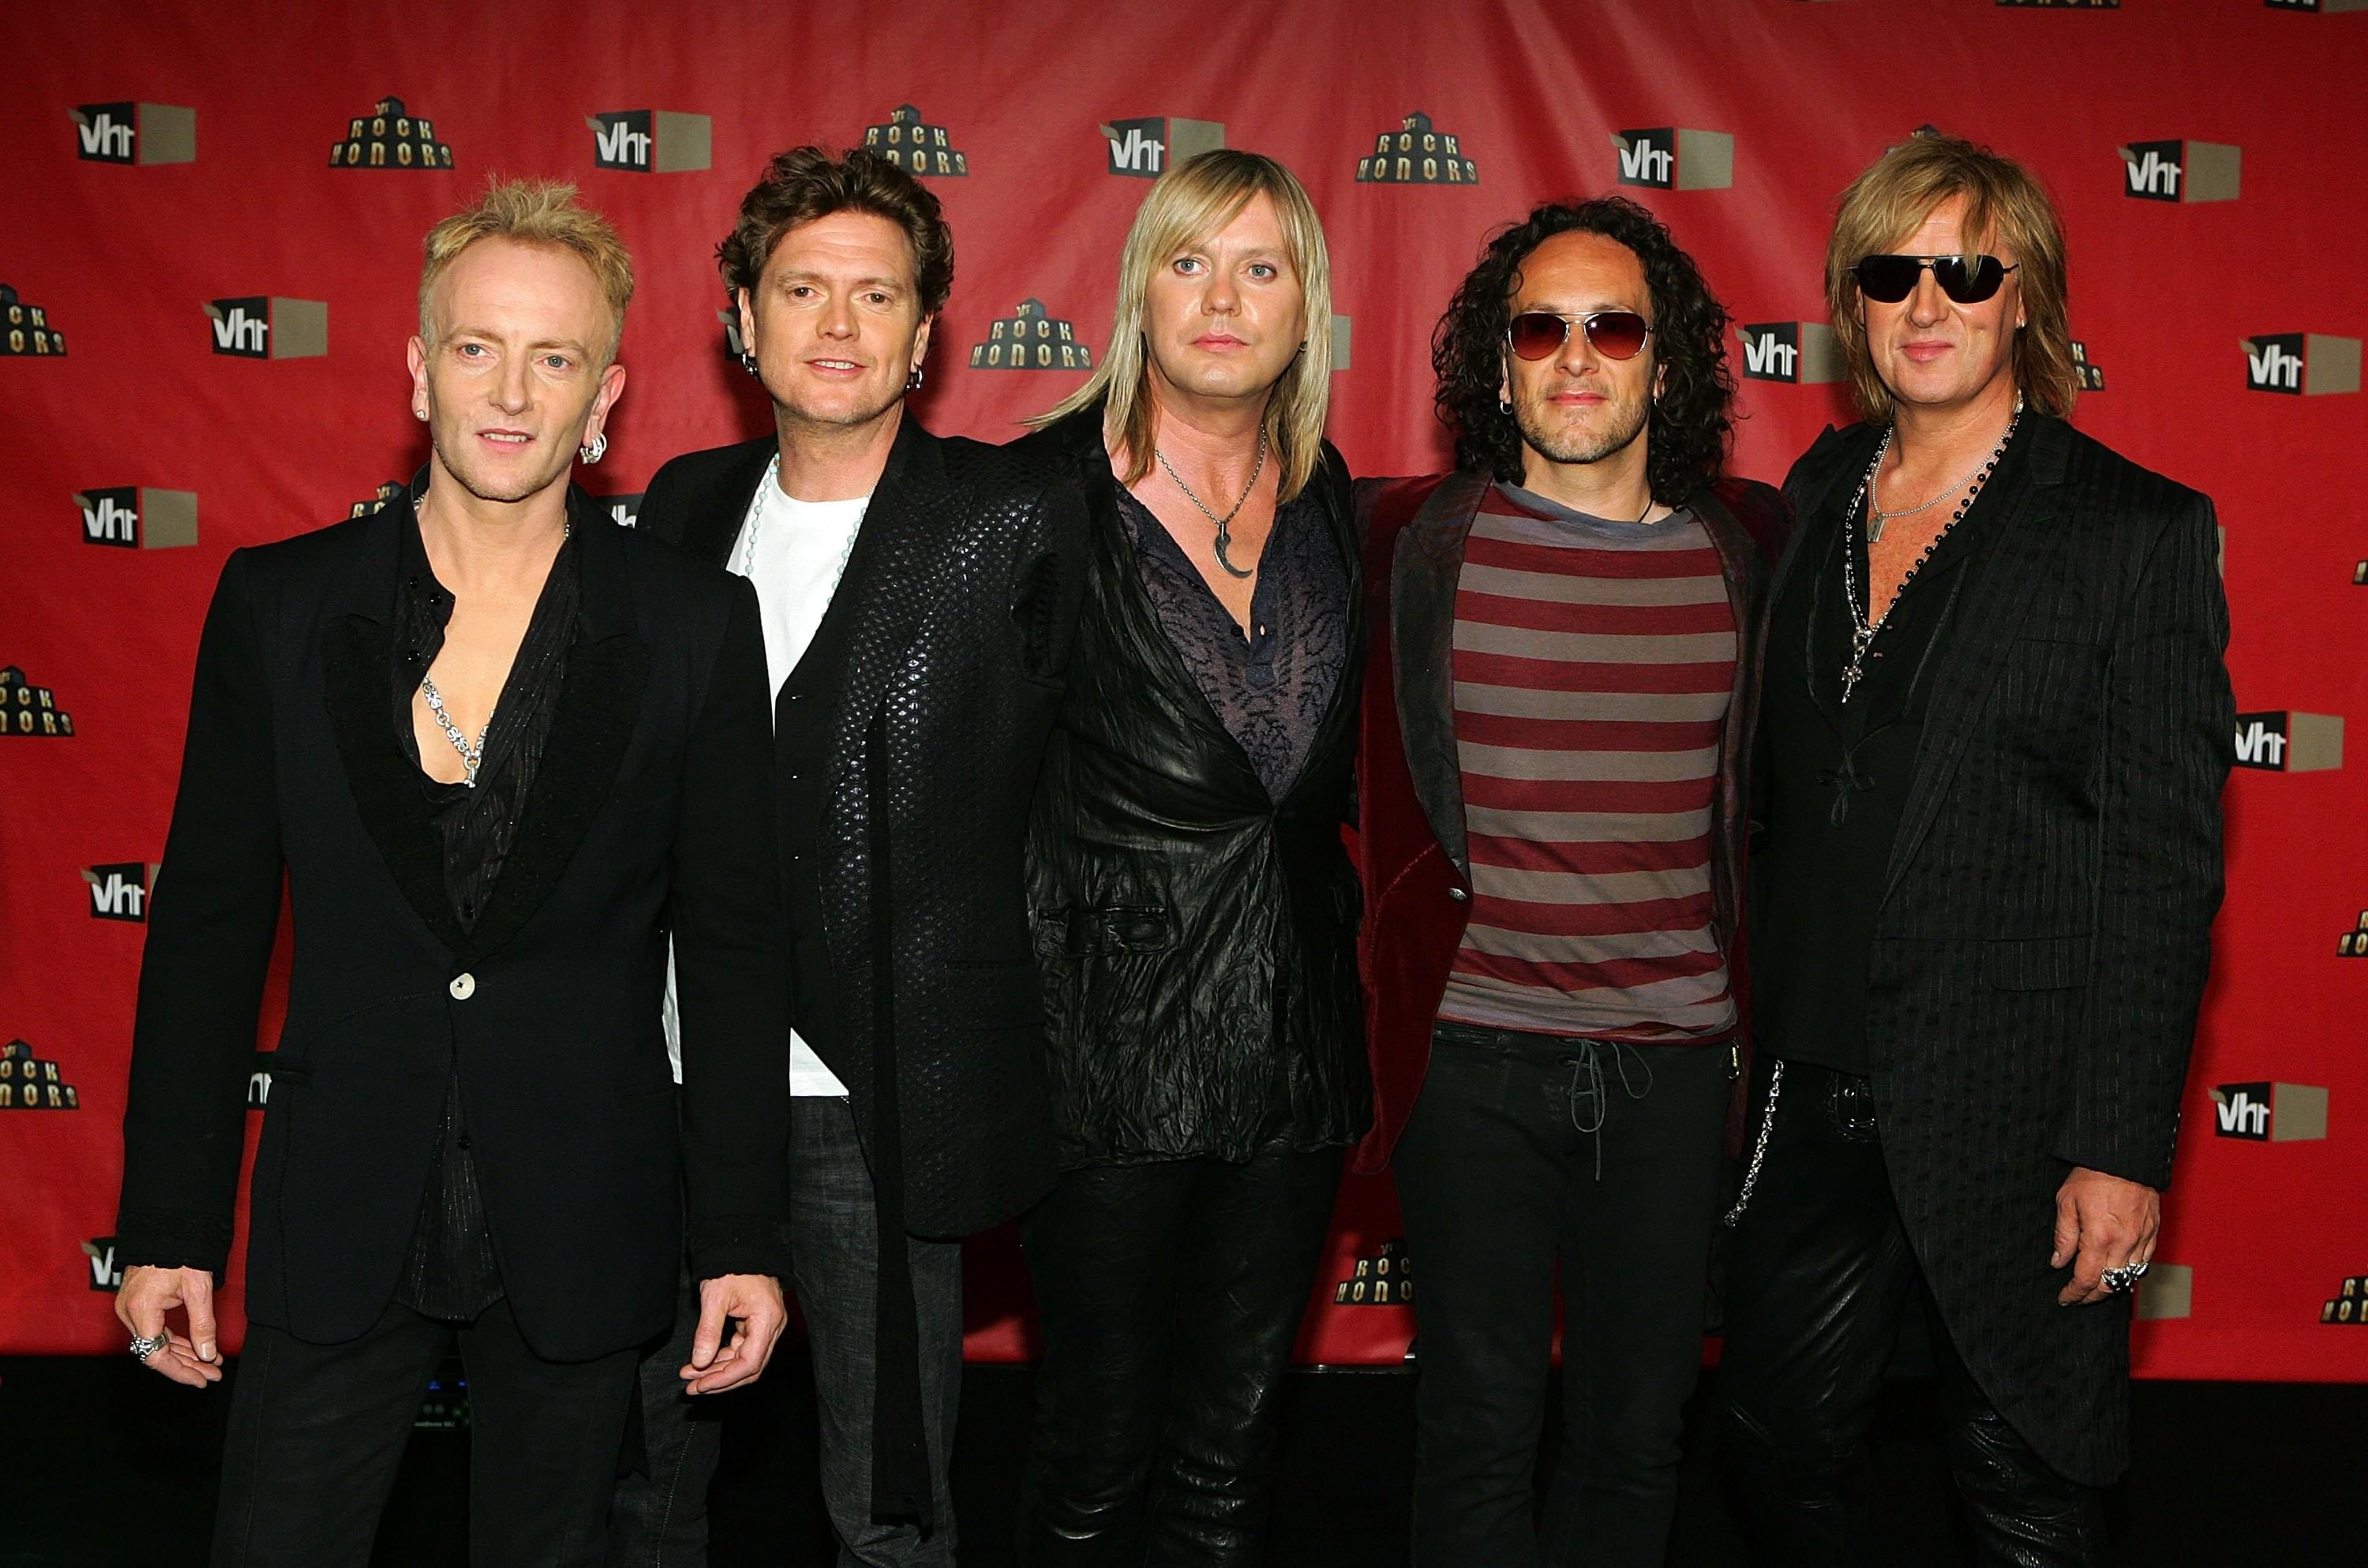 Def Leppard, Janet Jackson, Stevie Nicks among 2019 Rock & Roll Hall of Fame Inductees